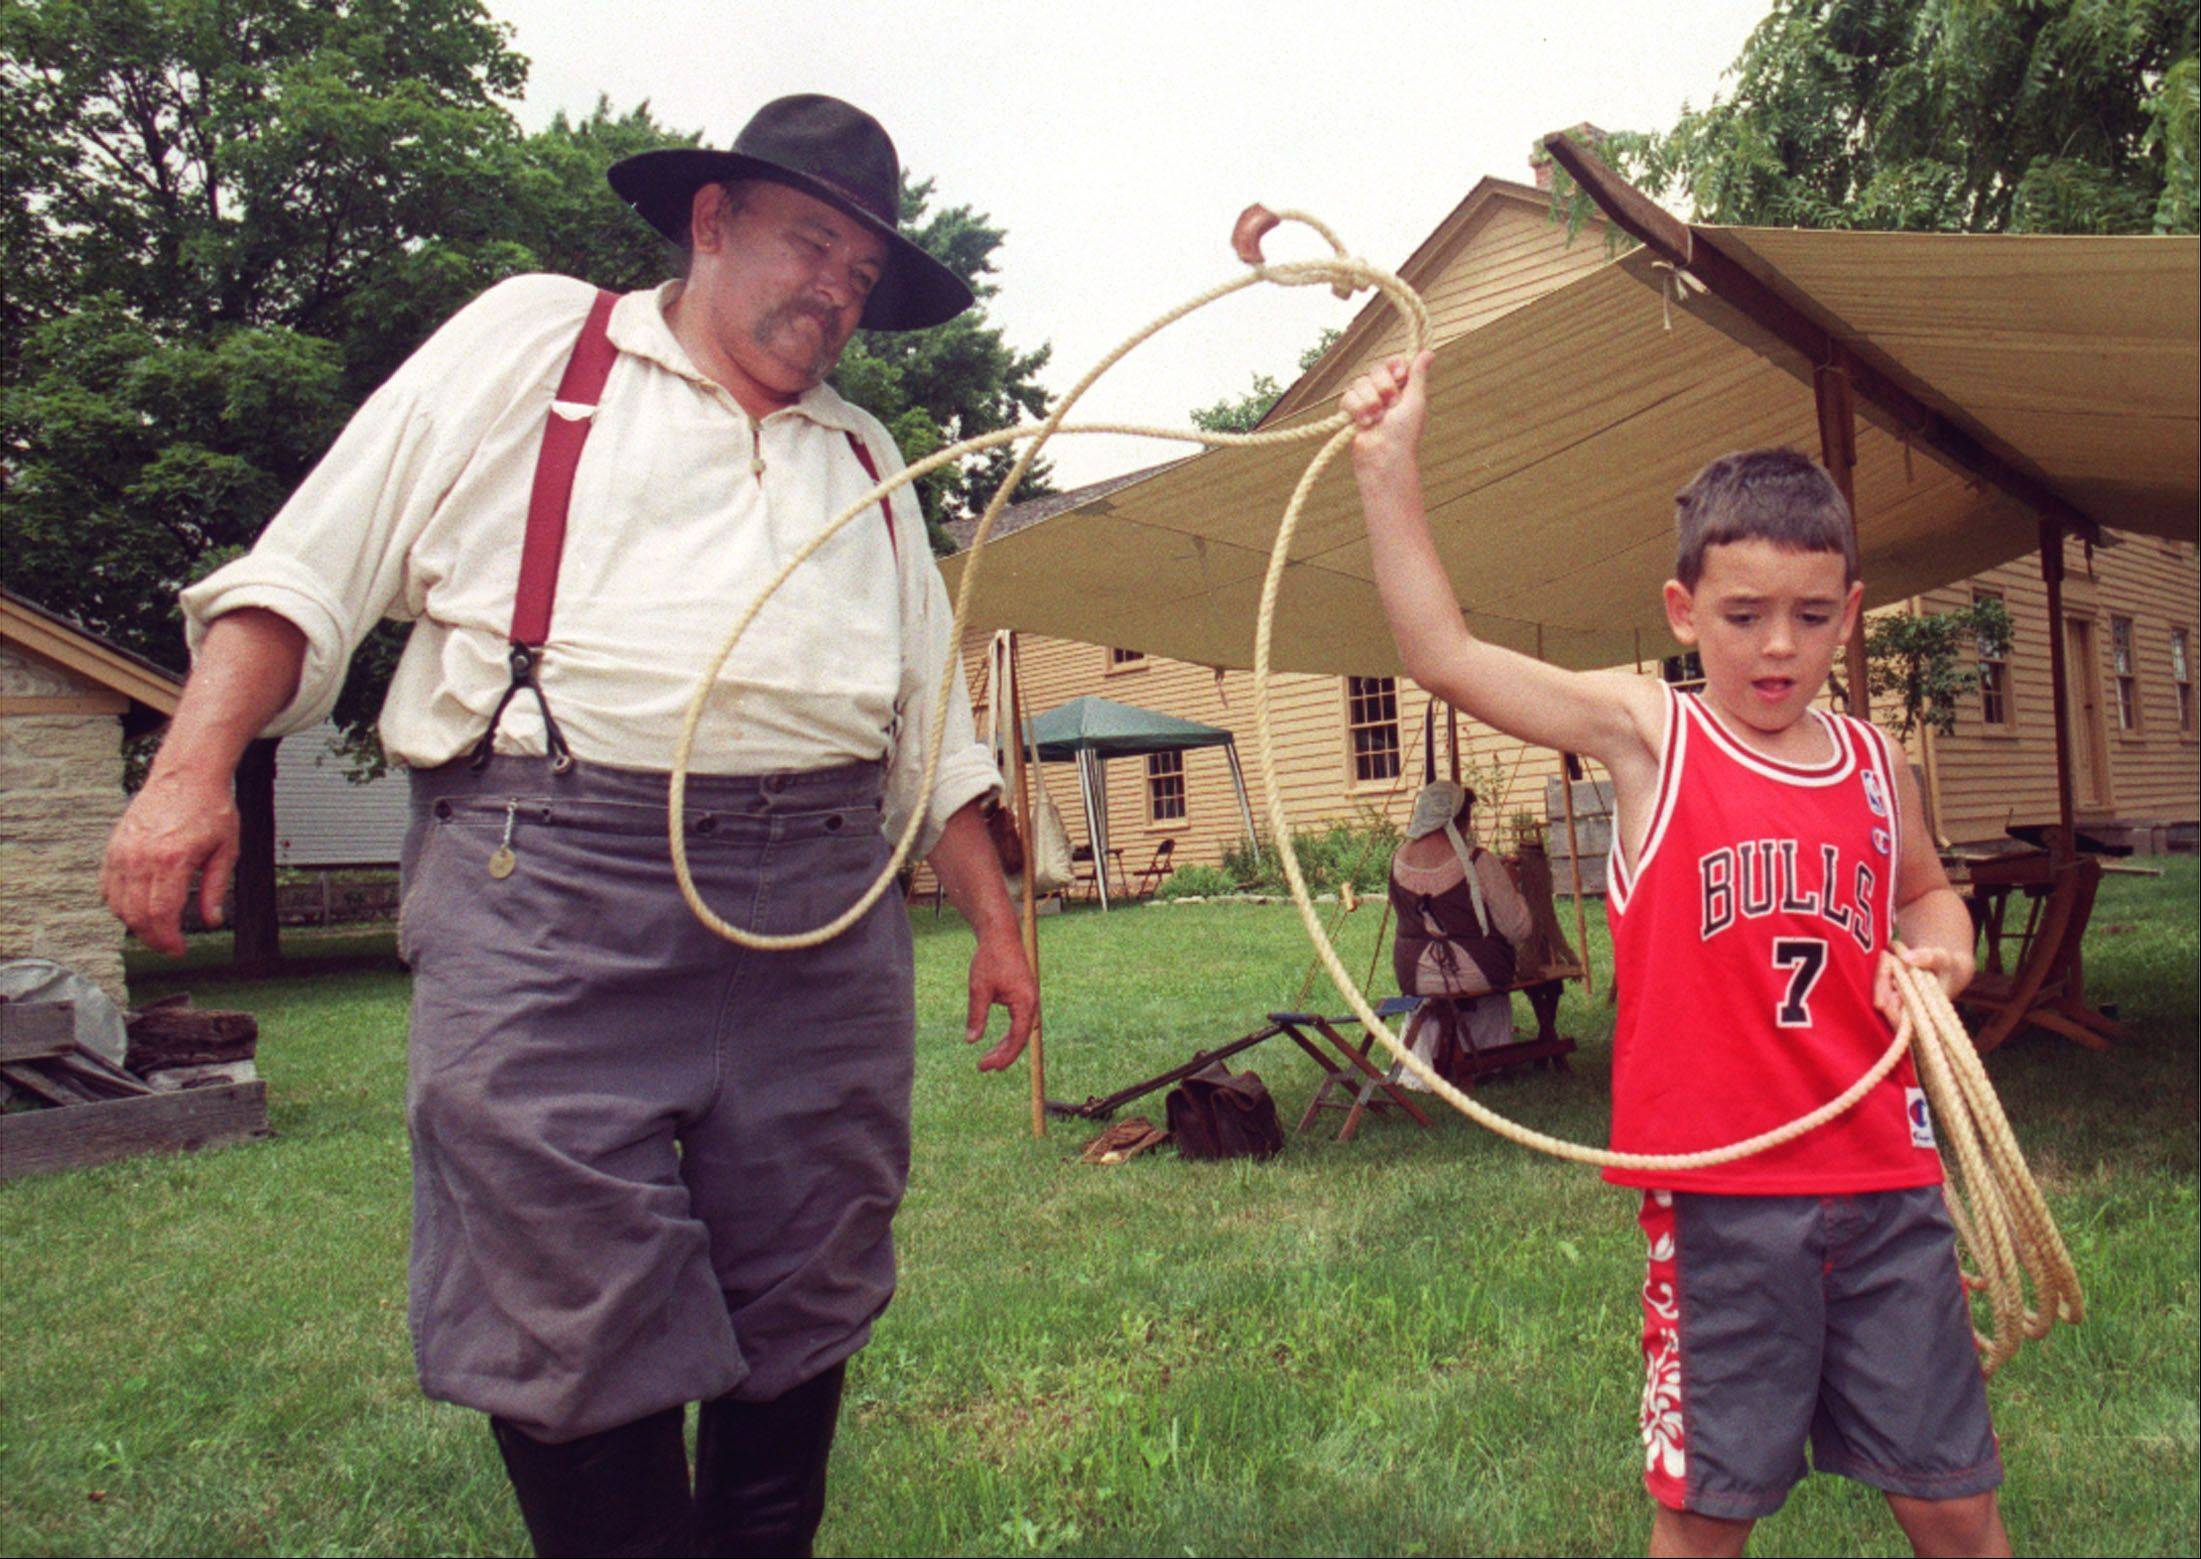 Glen Ellyn Historical Society's Tavern Day celebration will allow folks of all ages to get a taste of pioneer life.